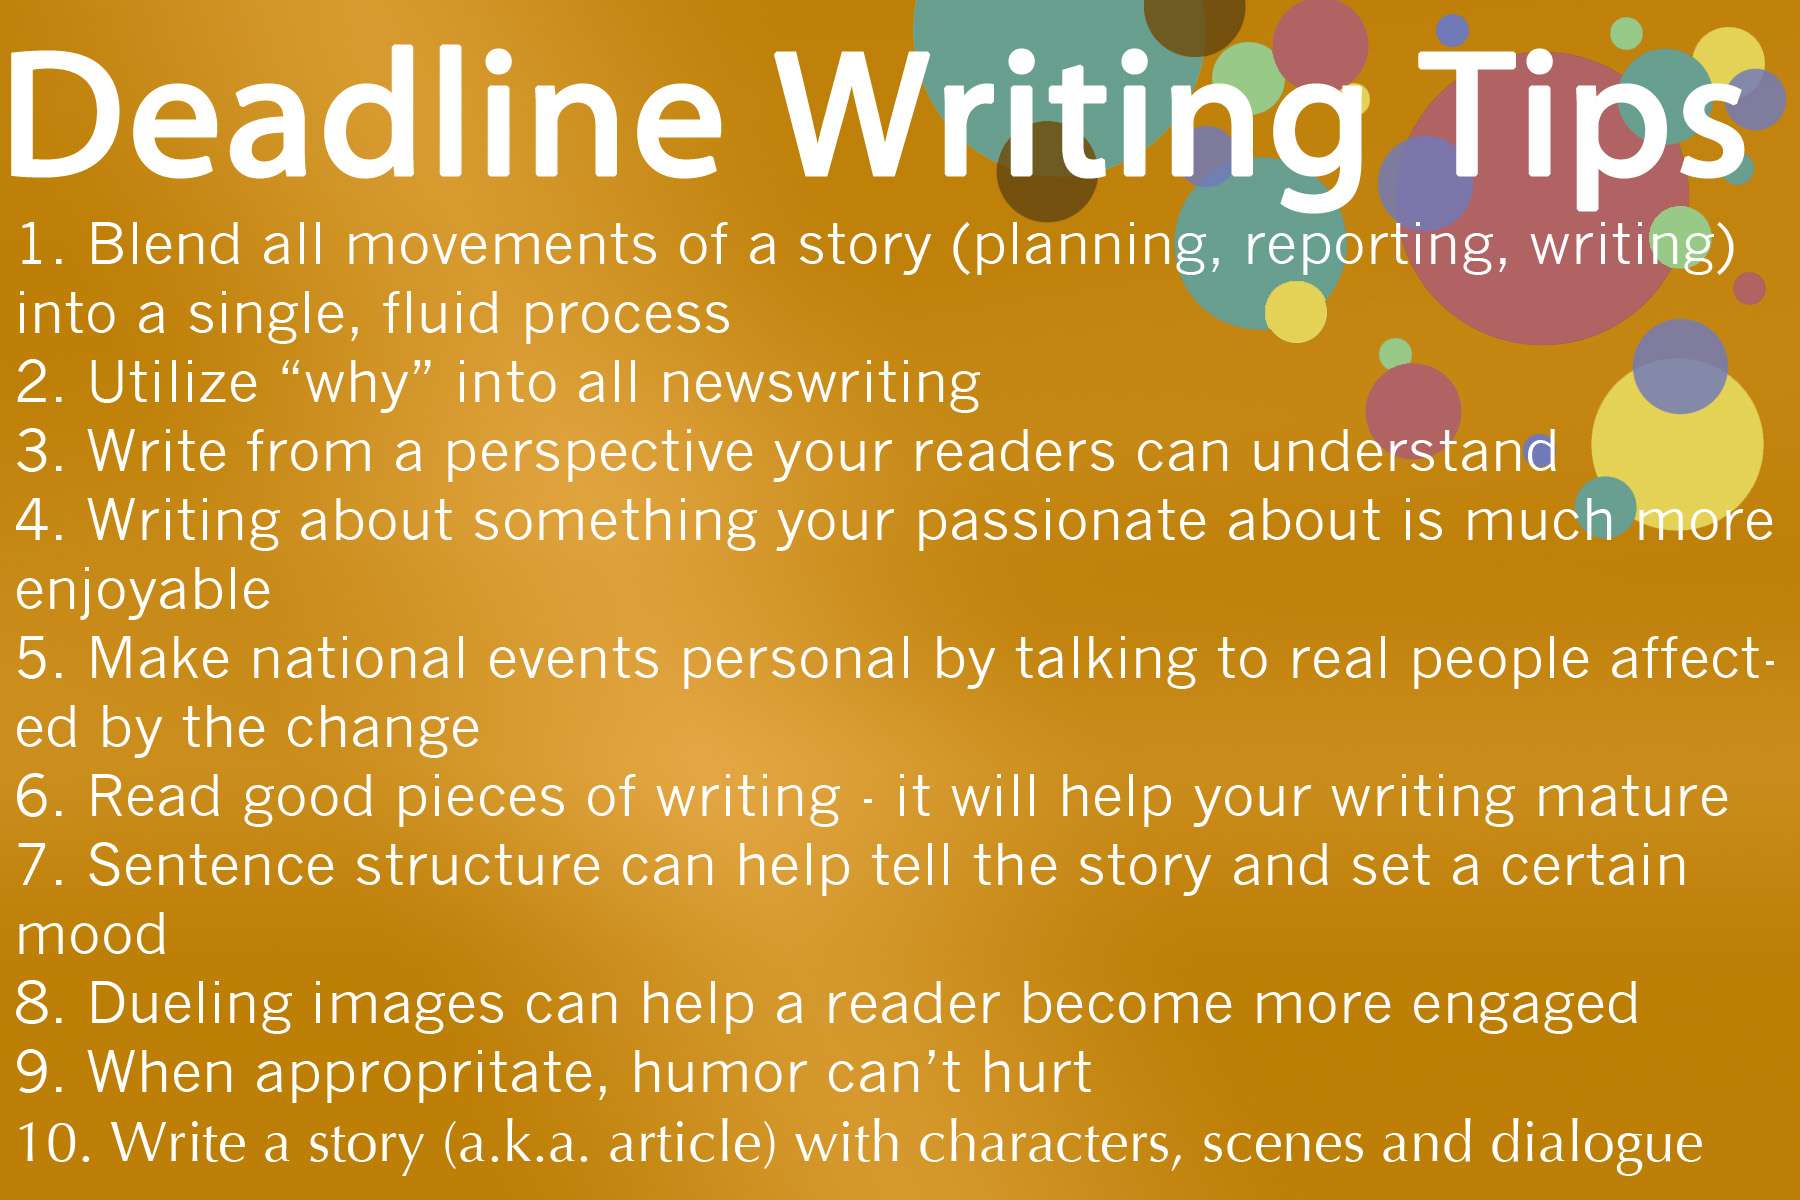 column writing Column definition is - a vertical arrangement of items printed or written on a page how to use column in a sentence a vertical arrangement of items printed or written on a page.